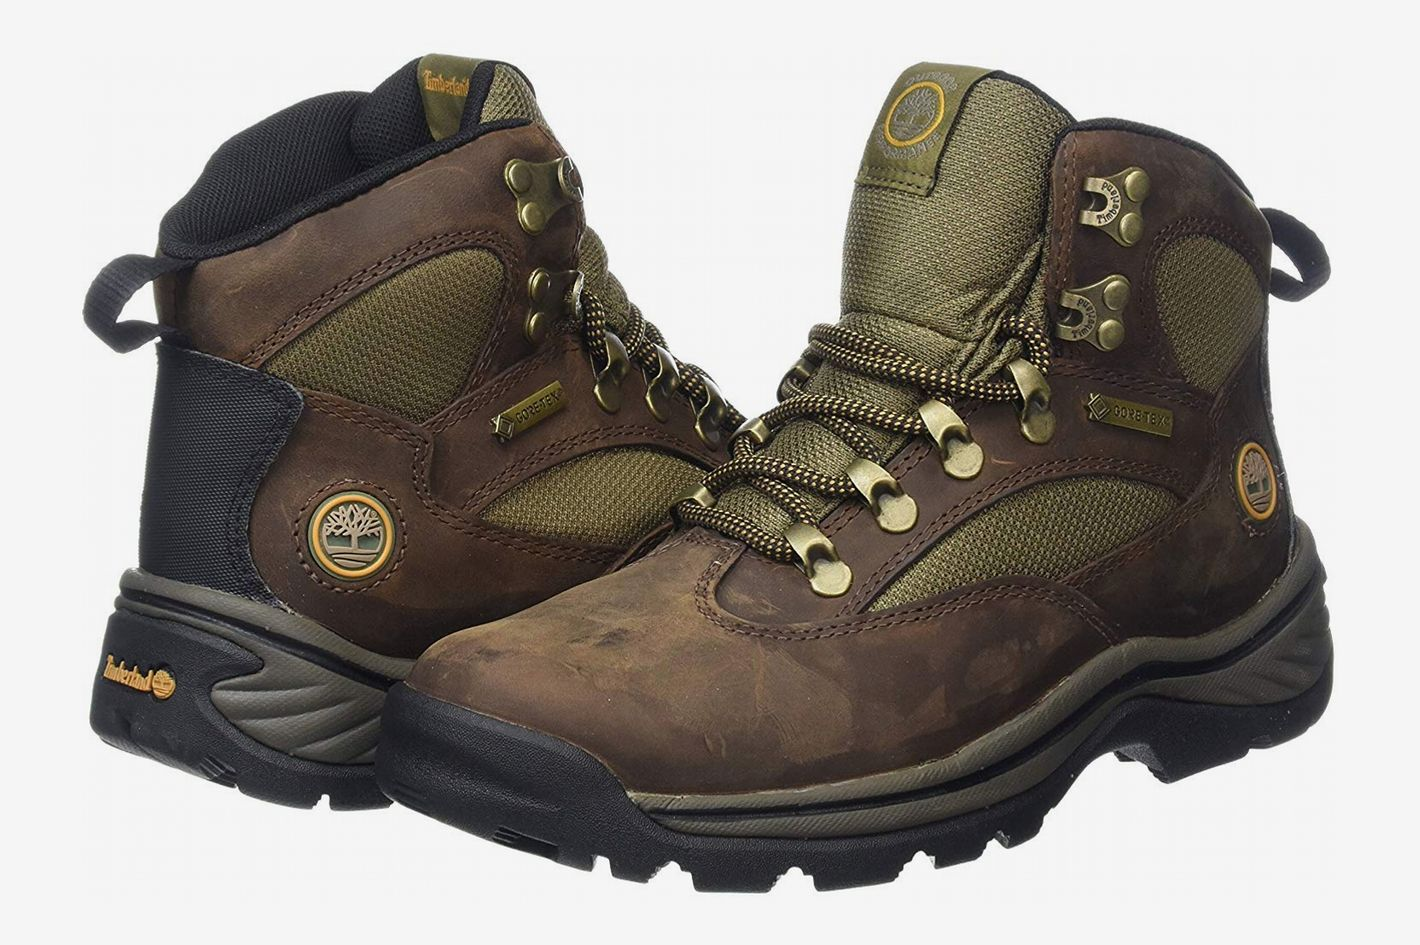 3d8d0ae593e05 21 Best Women's Hiking Boots to Buy 2019